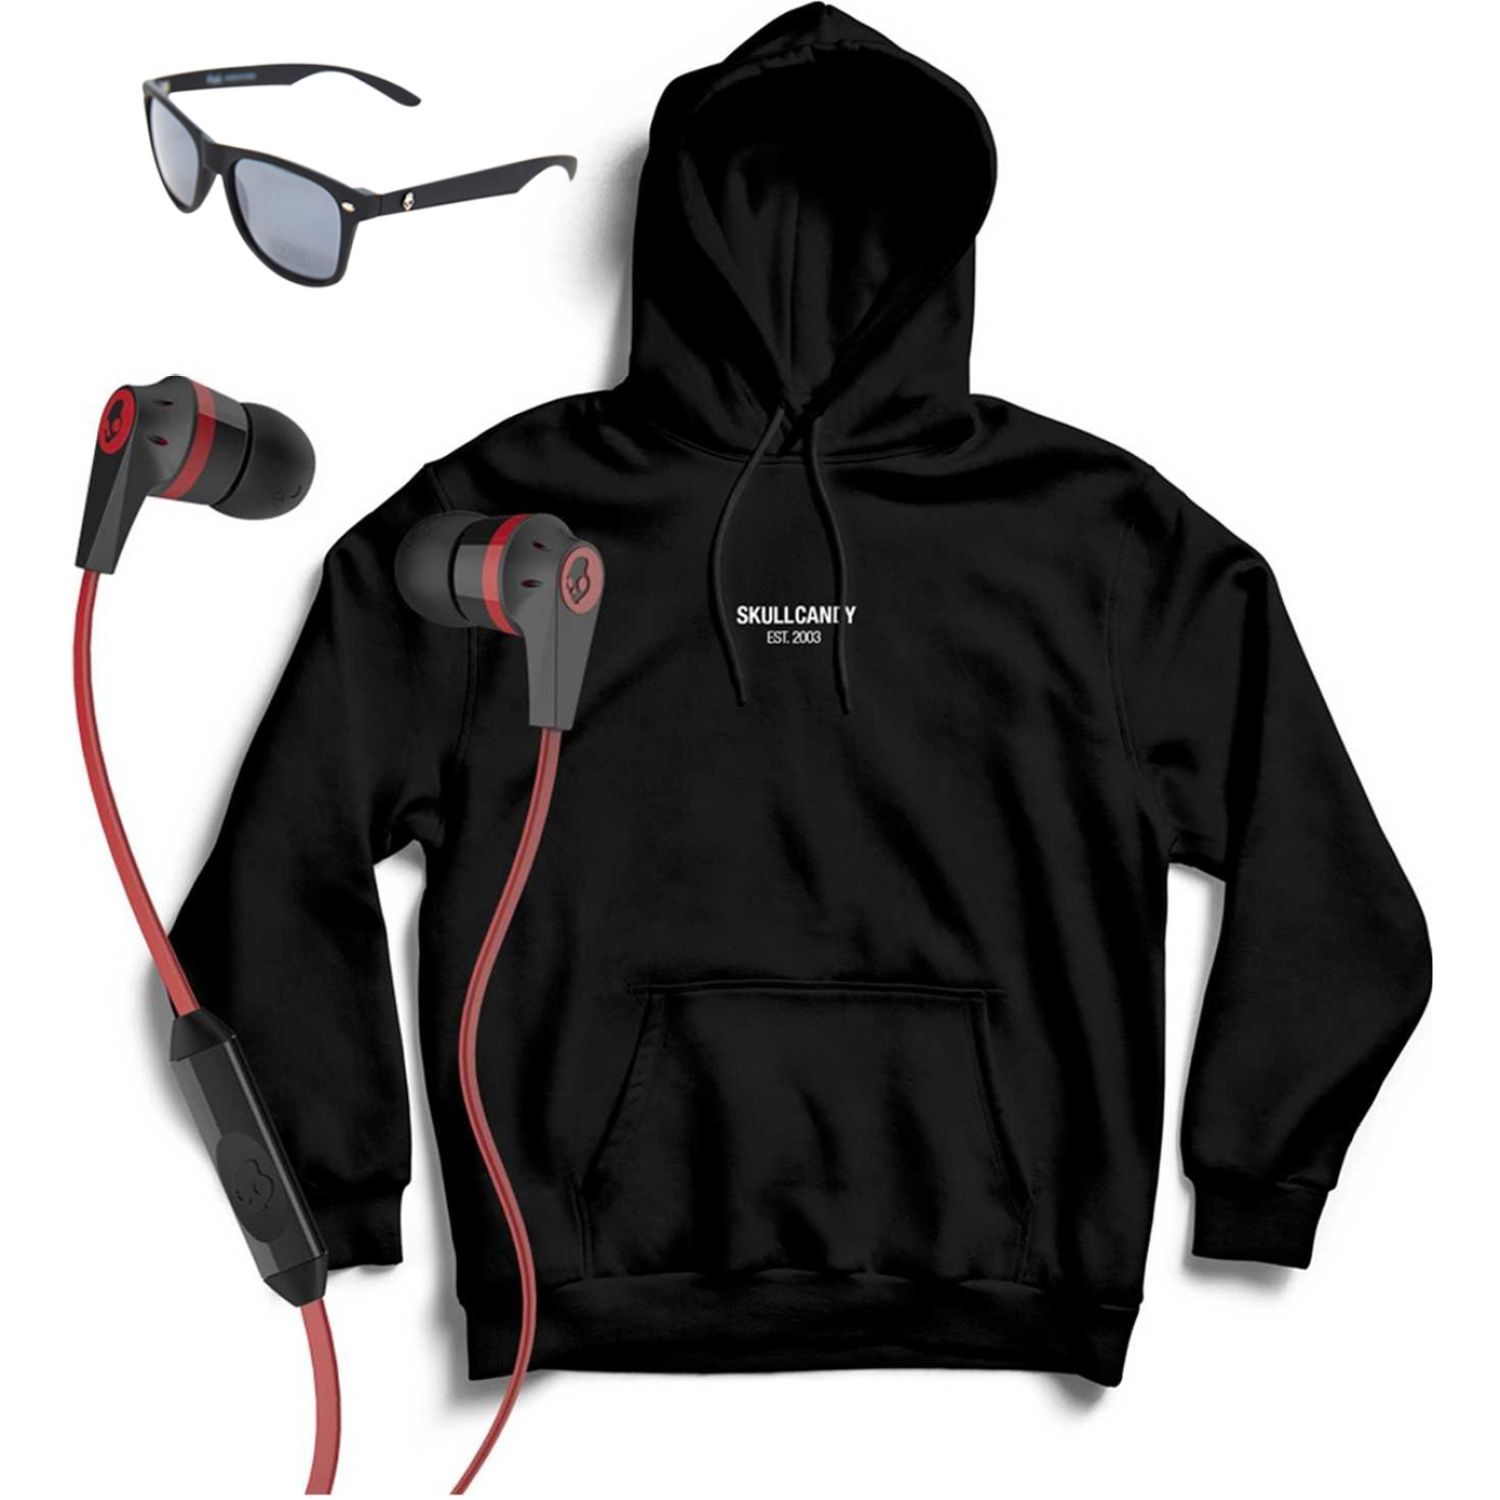 Skullcandy hoodie minimal neg+inkd wire+lenteskyd Rojo Hoodies y Sweaters Fashion